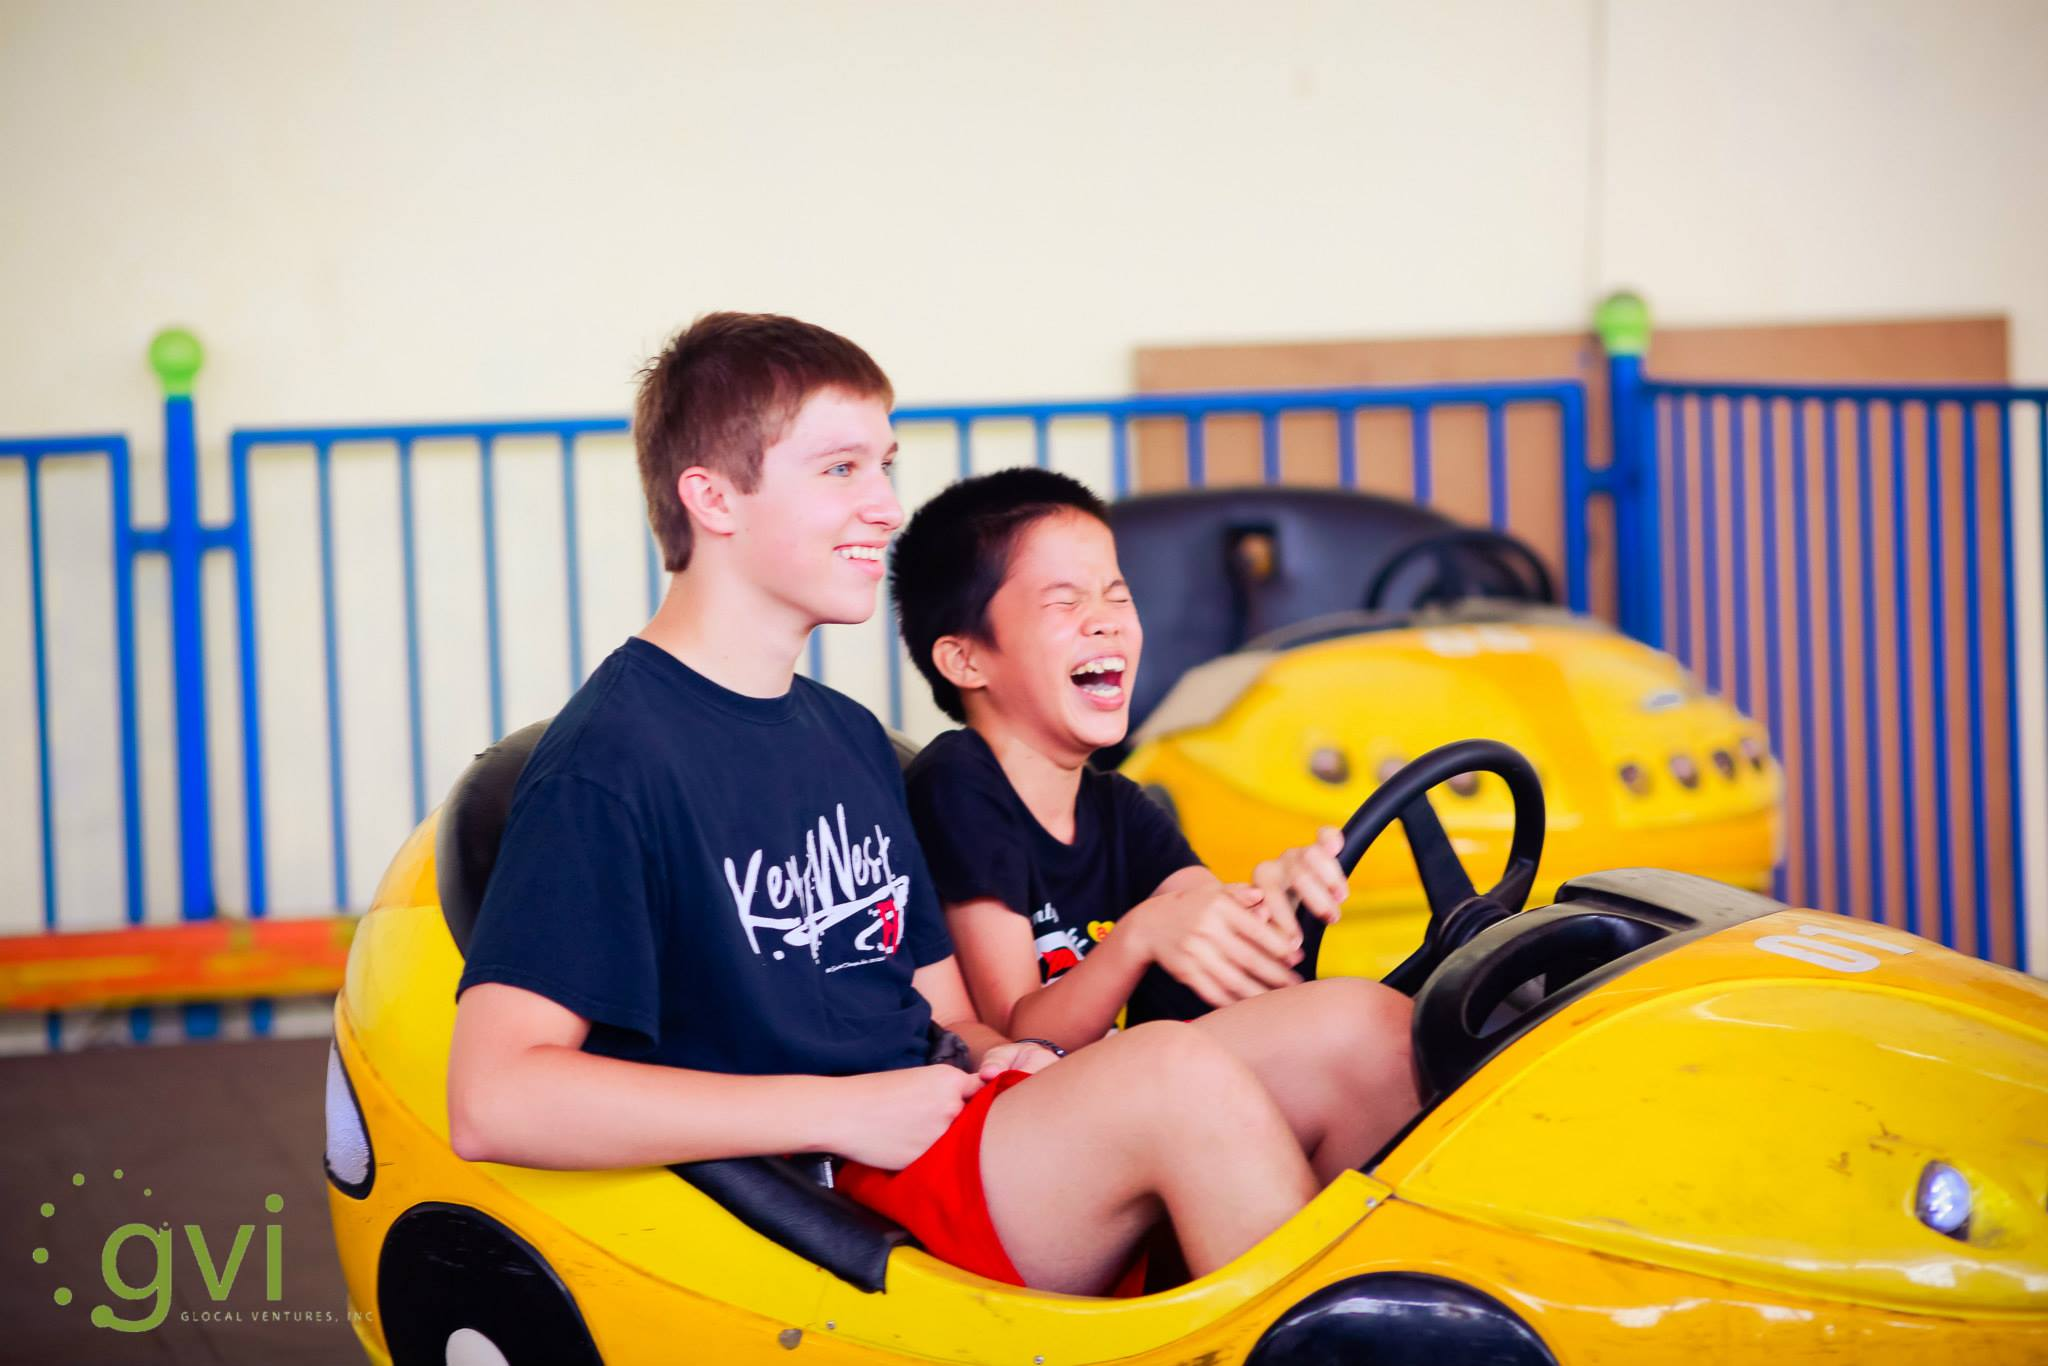 Huy and Weston in a bumper car during the first trip in 2015